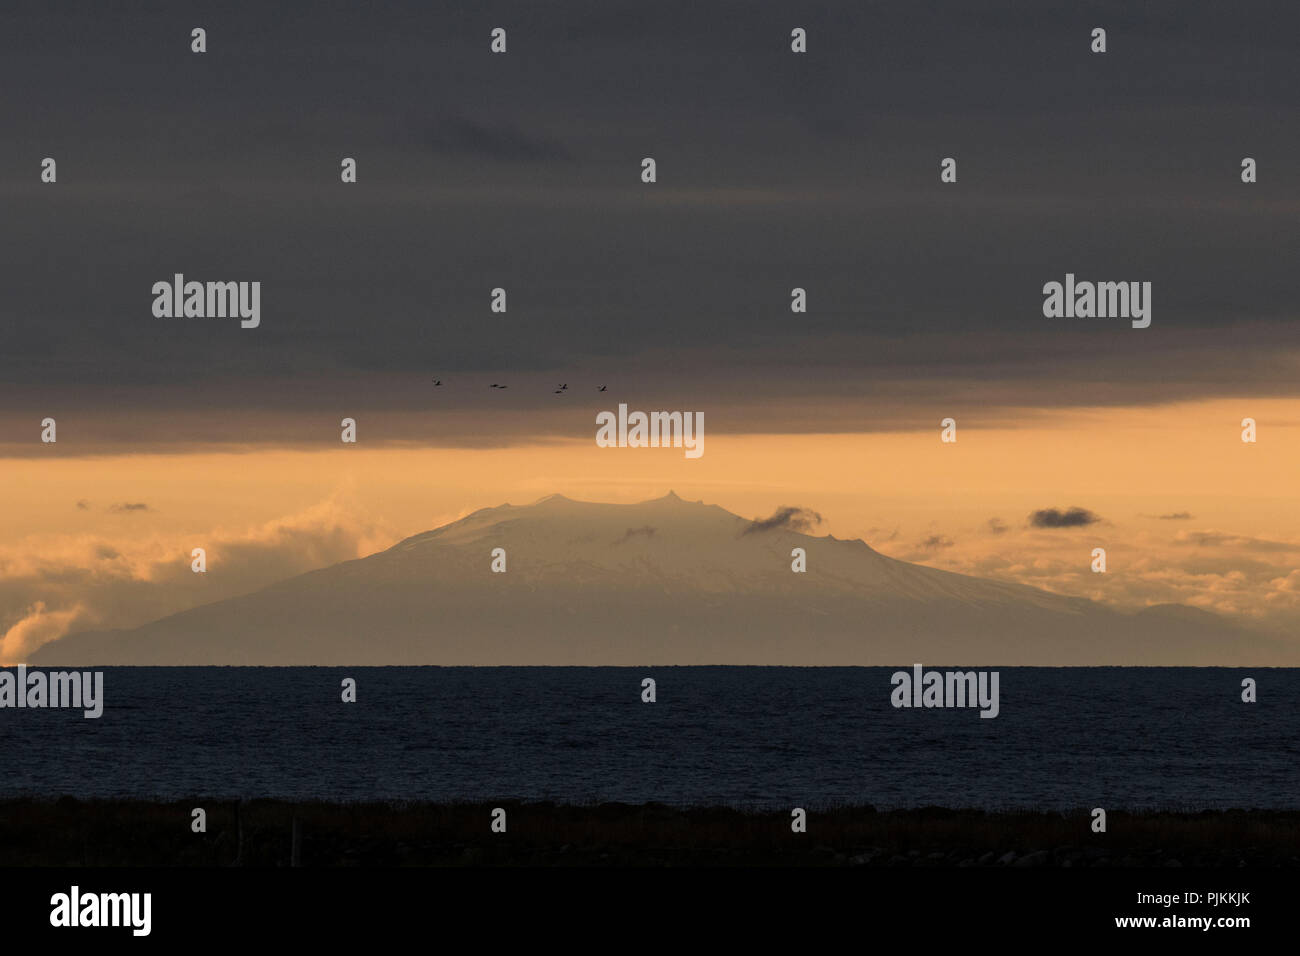 Iceland, volcano Snaefellsjökull, last evening light, distant view over the Faxafloi, stratovolcano, birds, Jules Verne, trip to the center of the earth, - Stock Image